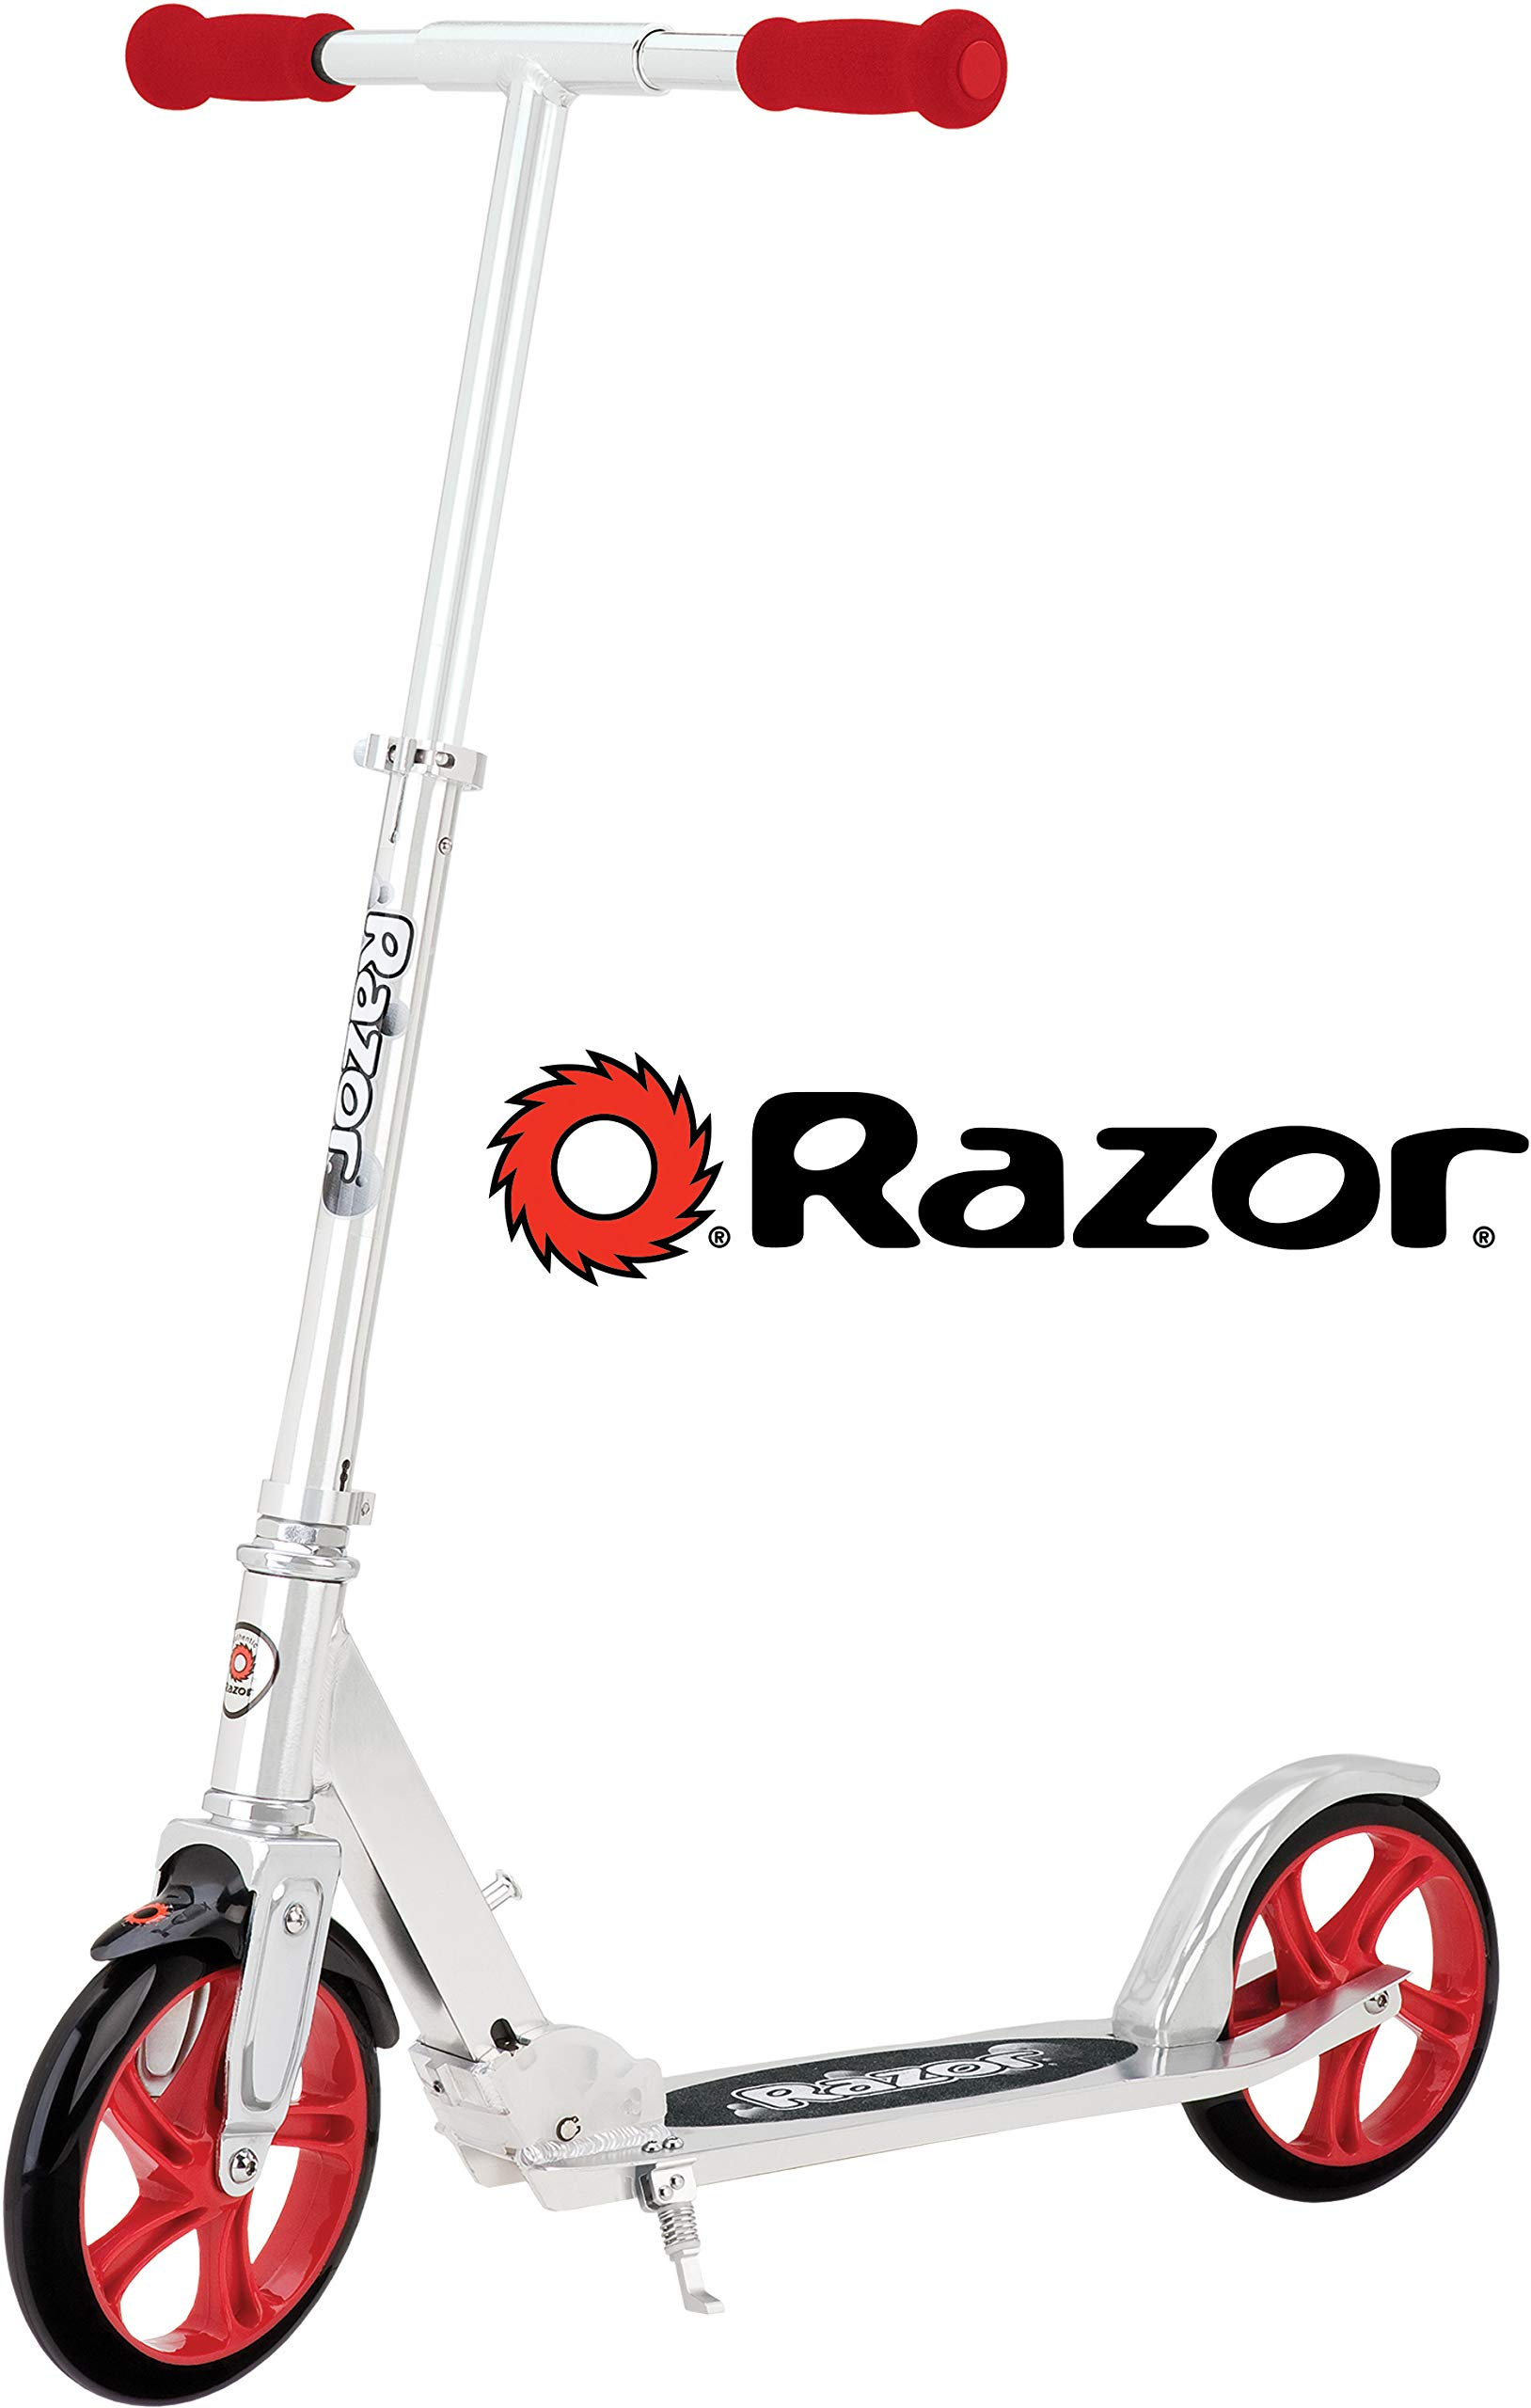 Razor A5 LUX Kick Scooter - Red - FFP by Razor